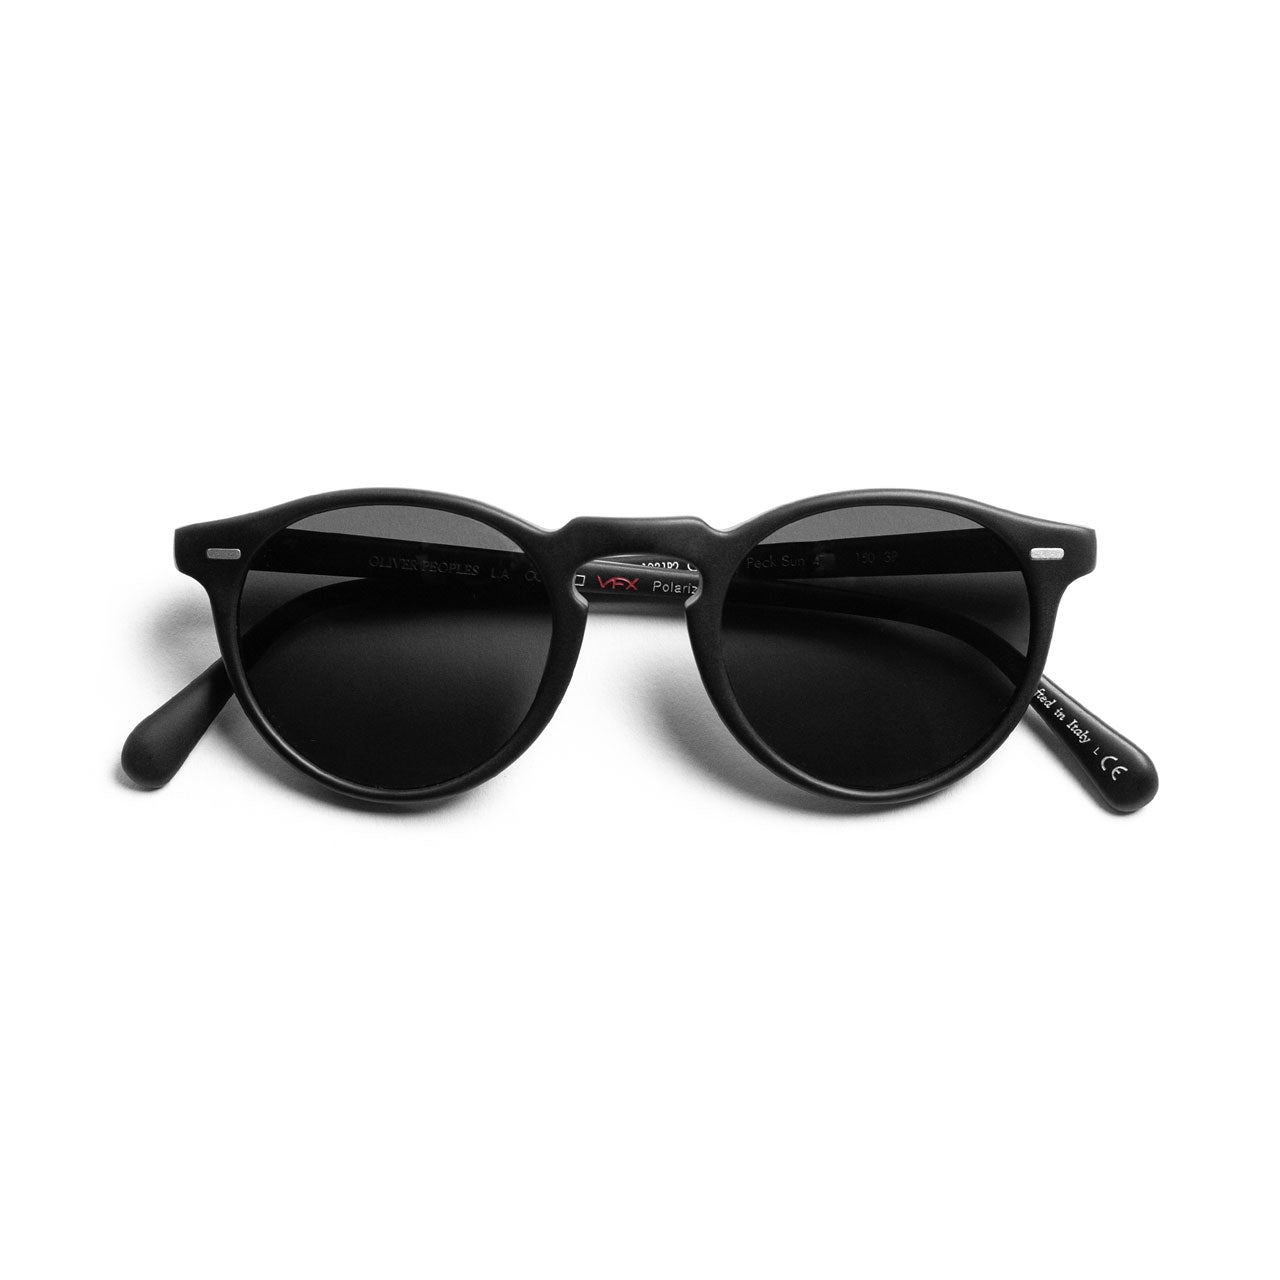 Oliver Peoples x Gregory Peck Sunglasses